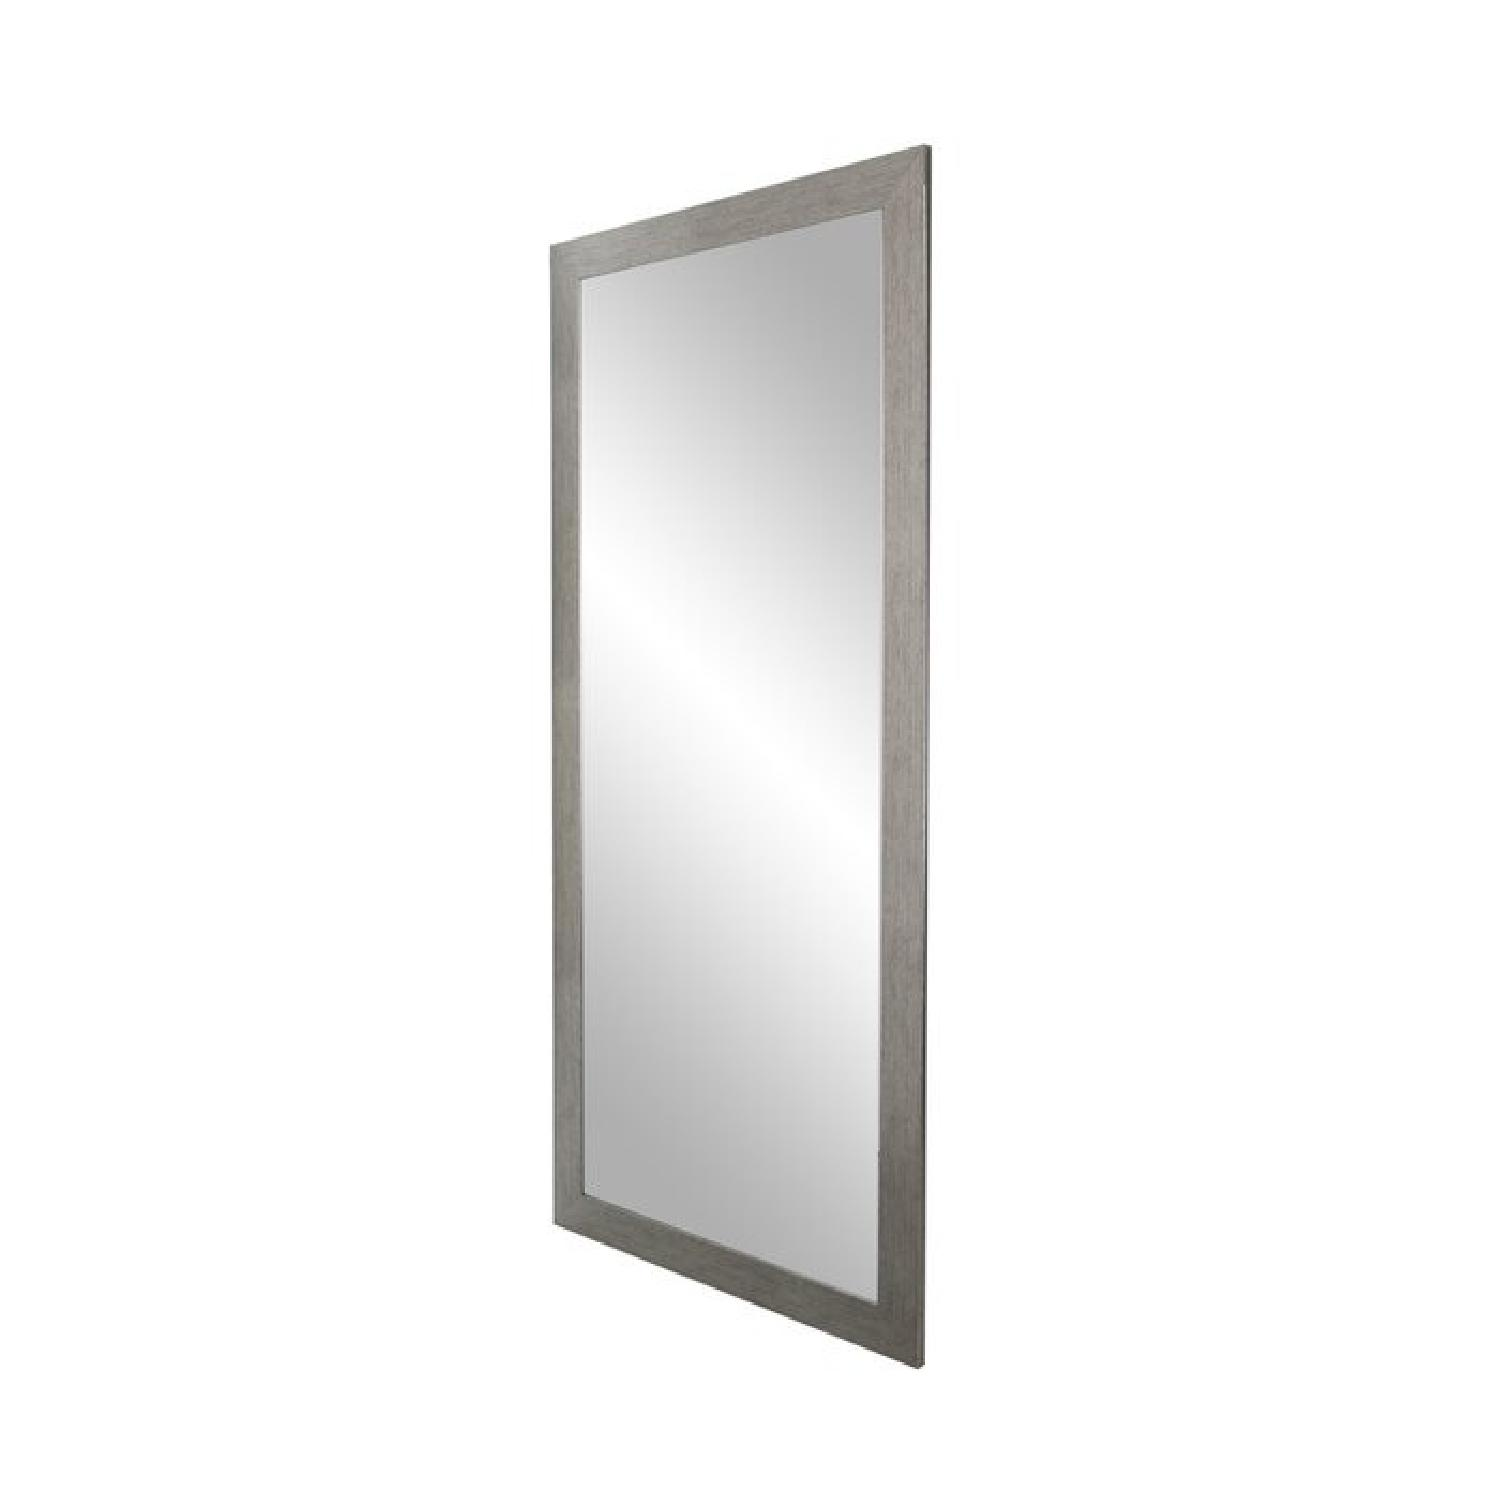 Laurel Crown Full Length Silver Floor Mirror